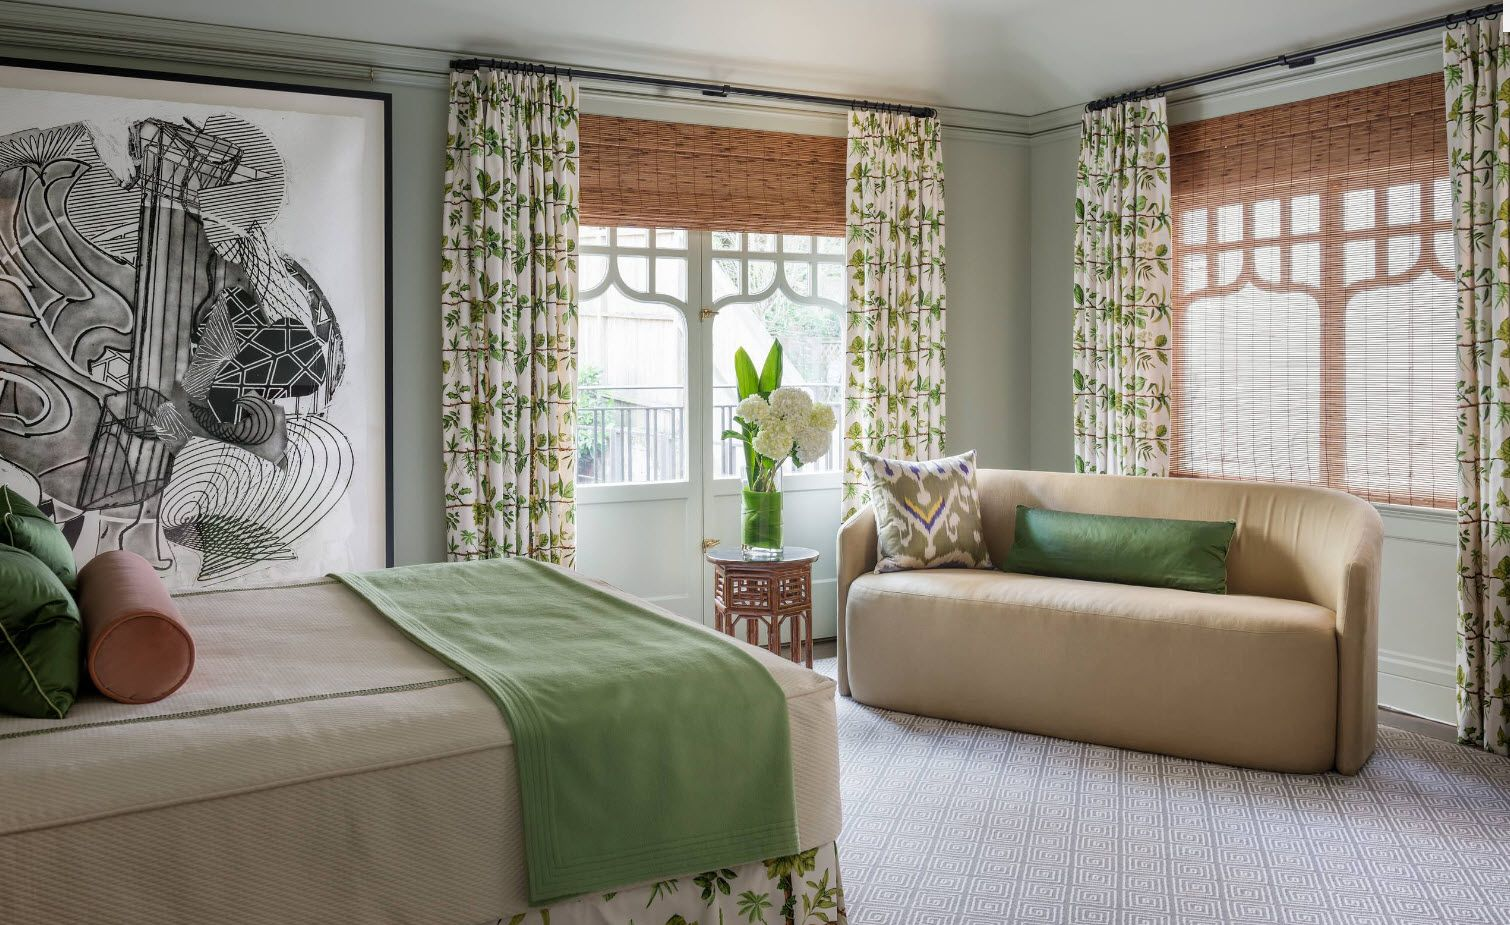 Bedroom Drapes 2017. Design, Forms, Real Examples with Photos. Colorful draperies and blinds all in one